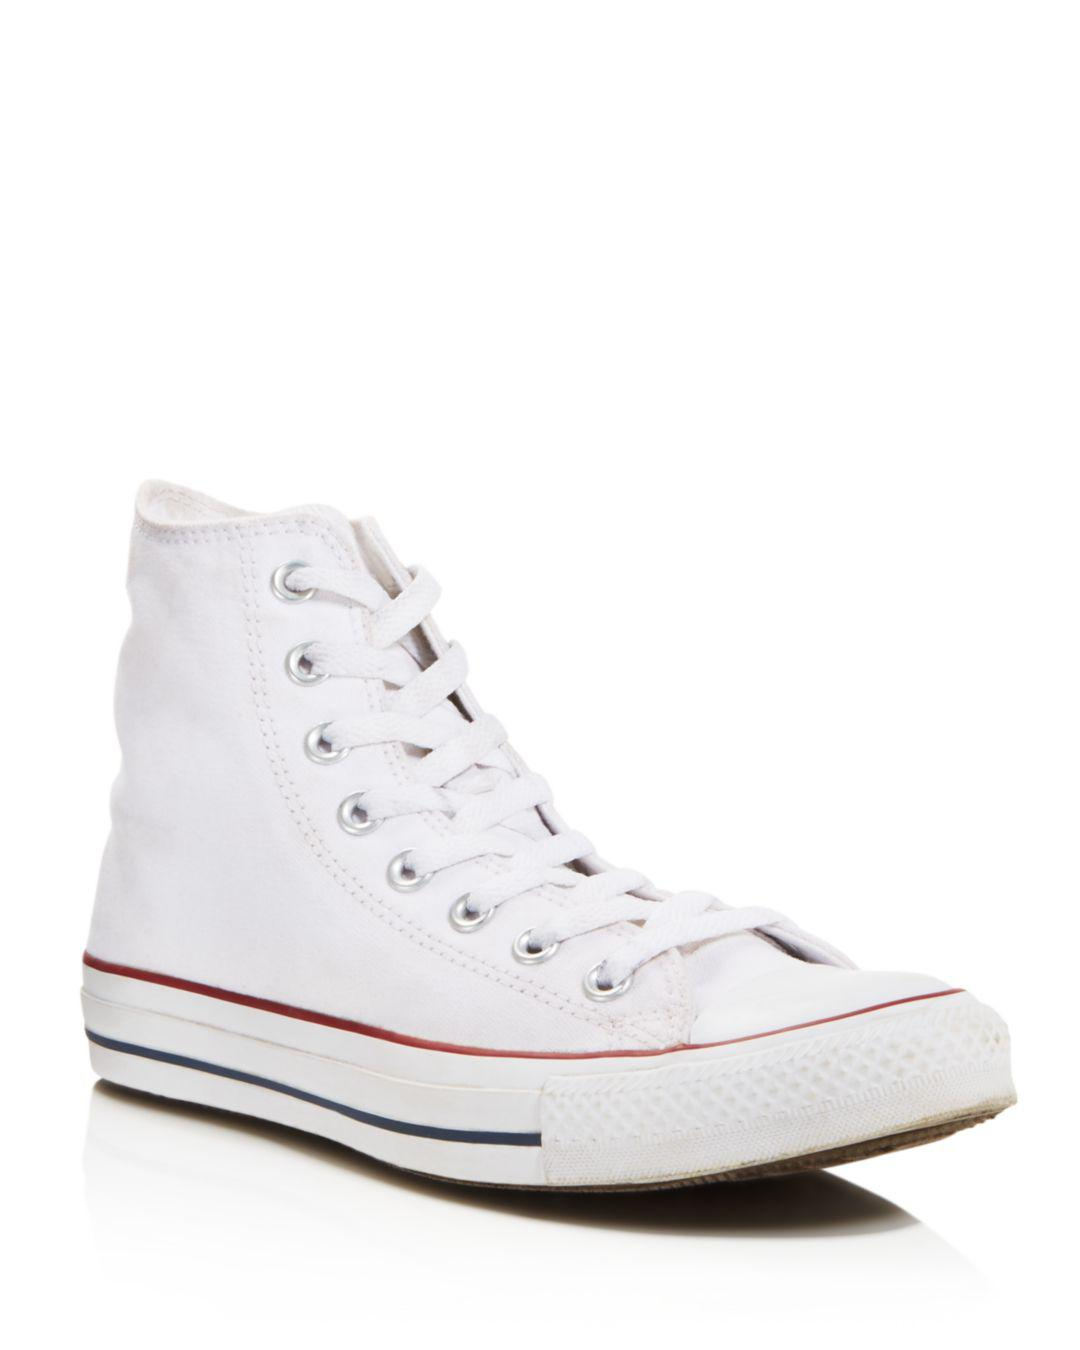 fcf0056f0a0e29 Lyst - Converse All Star Hi Top Women s Trainer White in White ...